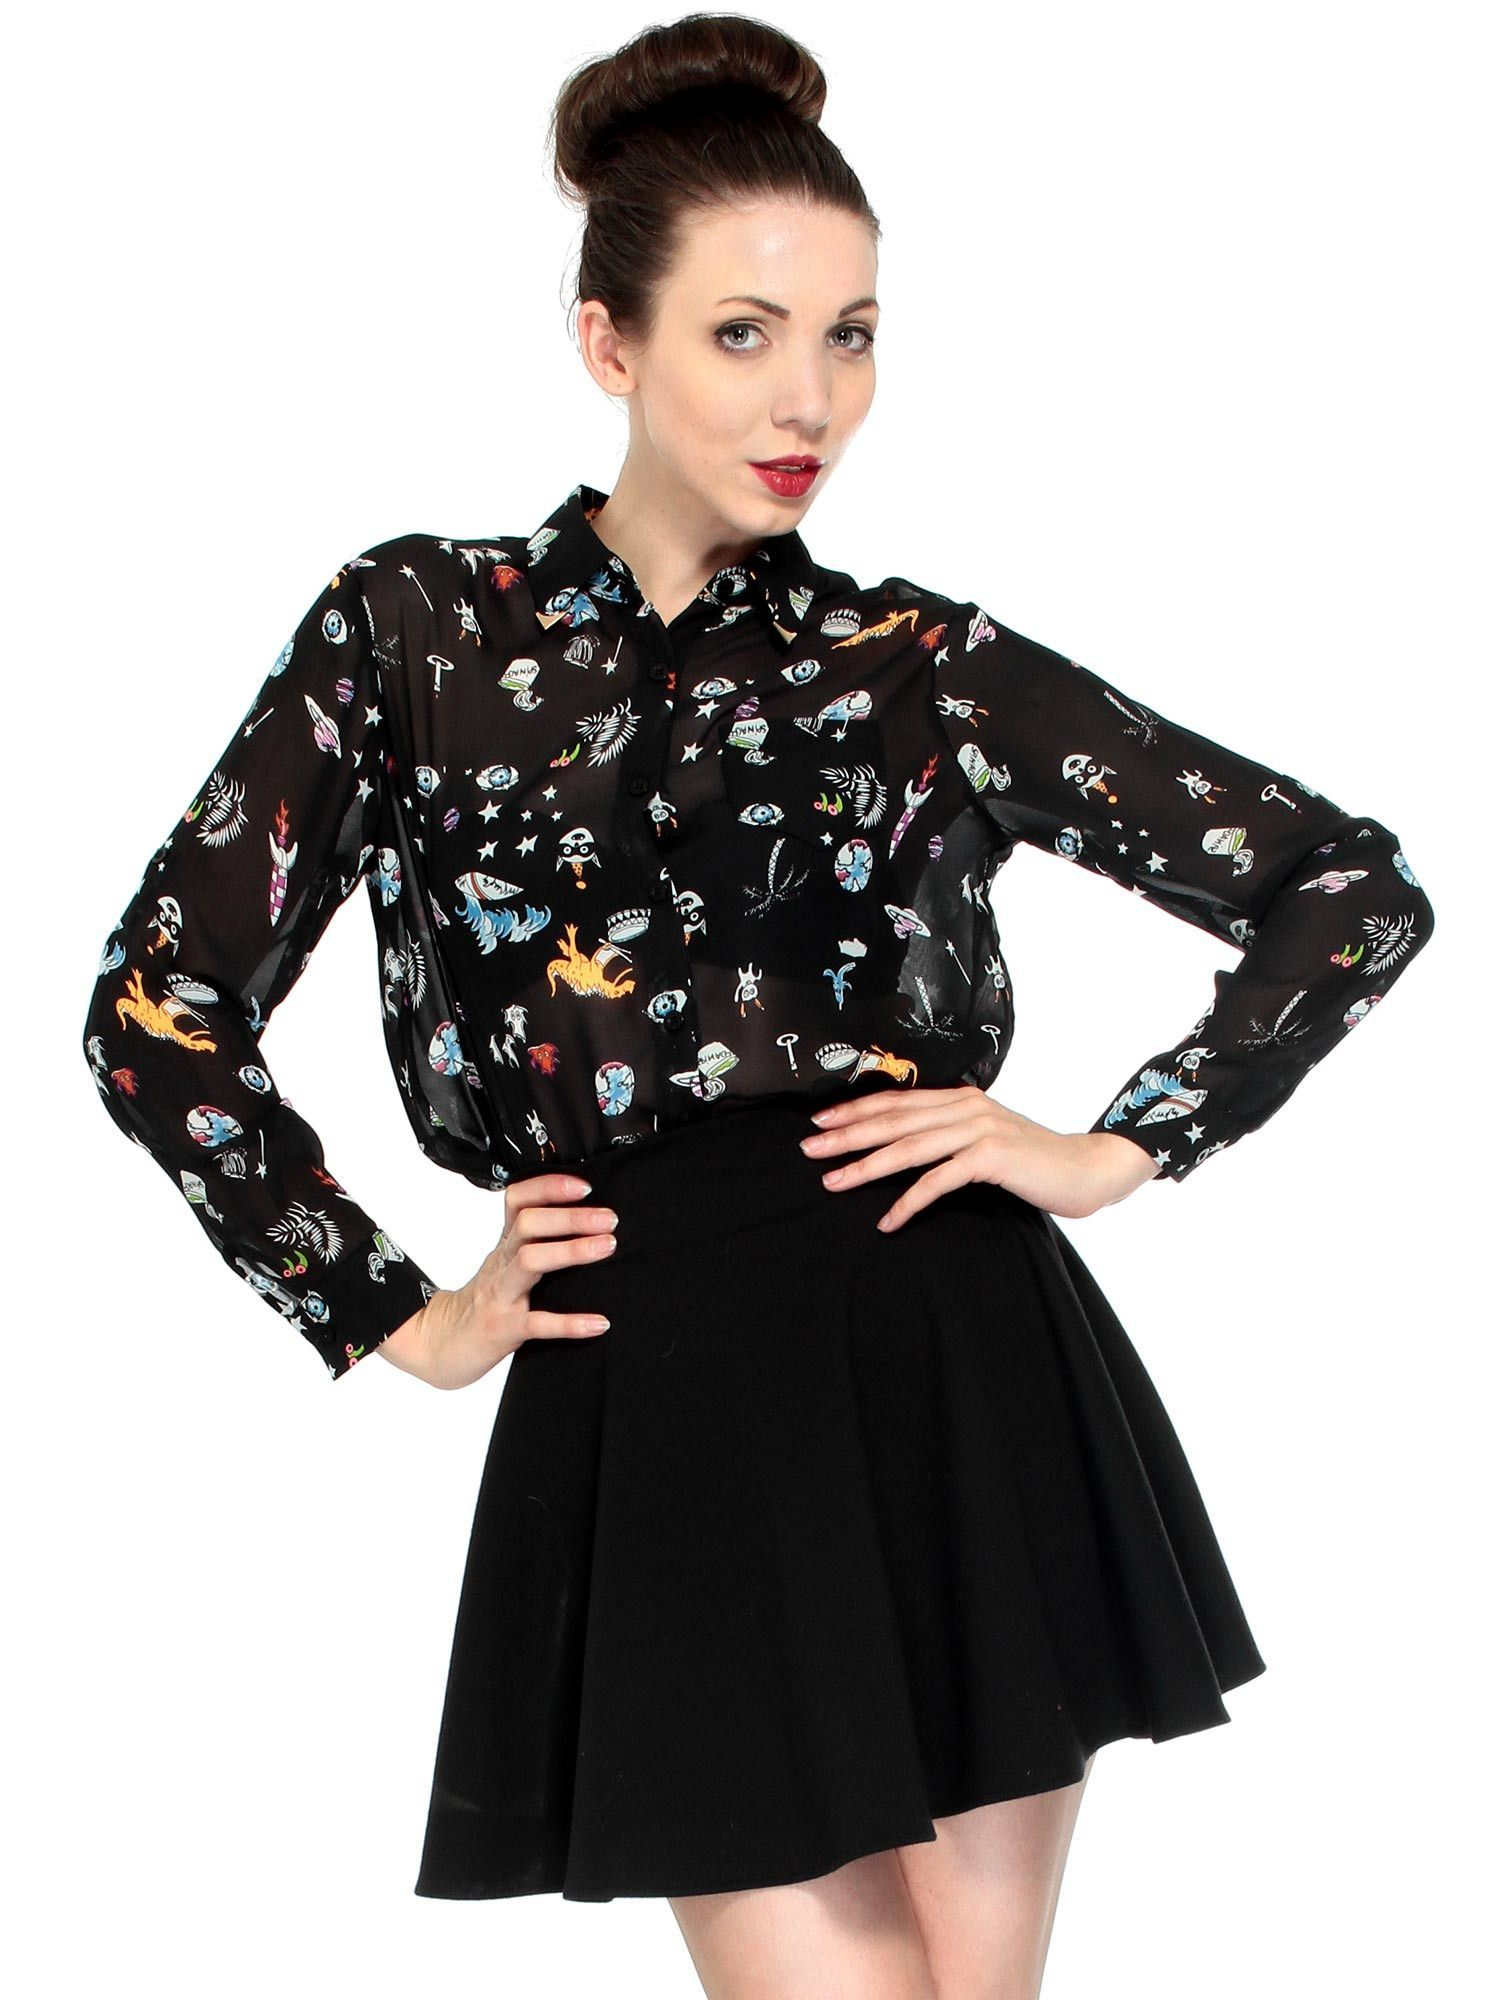 6498bfb50eef6 This chiffon blouse comes with long sleeves and a stylish turn down collar.  It s designed with a dinosaur color print. Material  Chiffon Georgette Size  S  ...